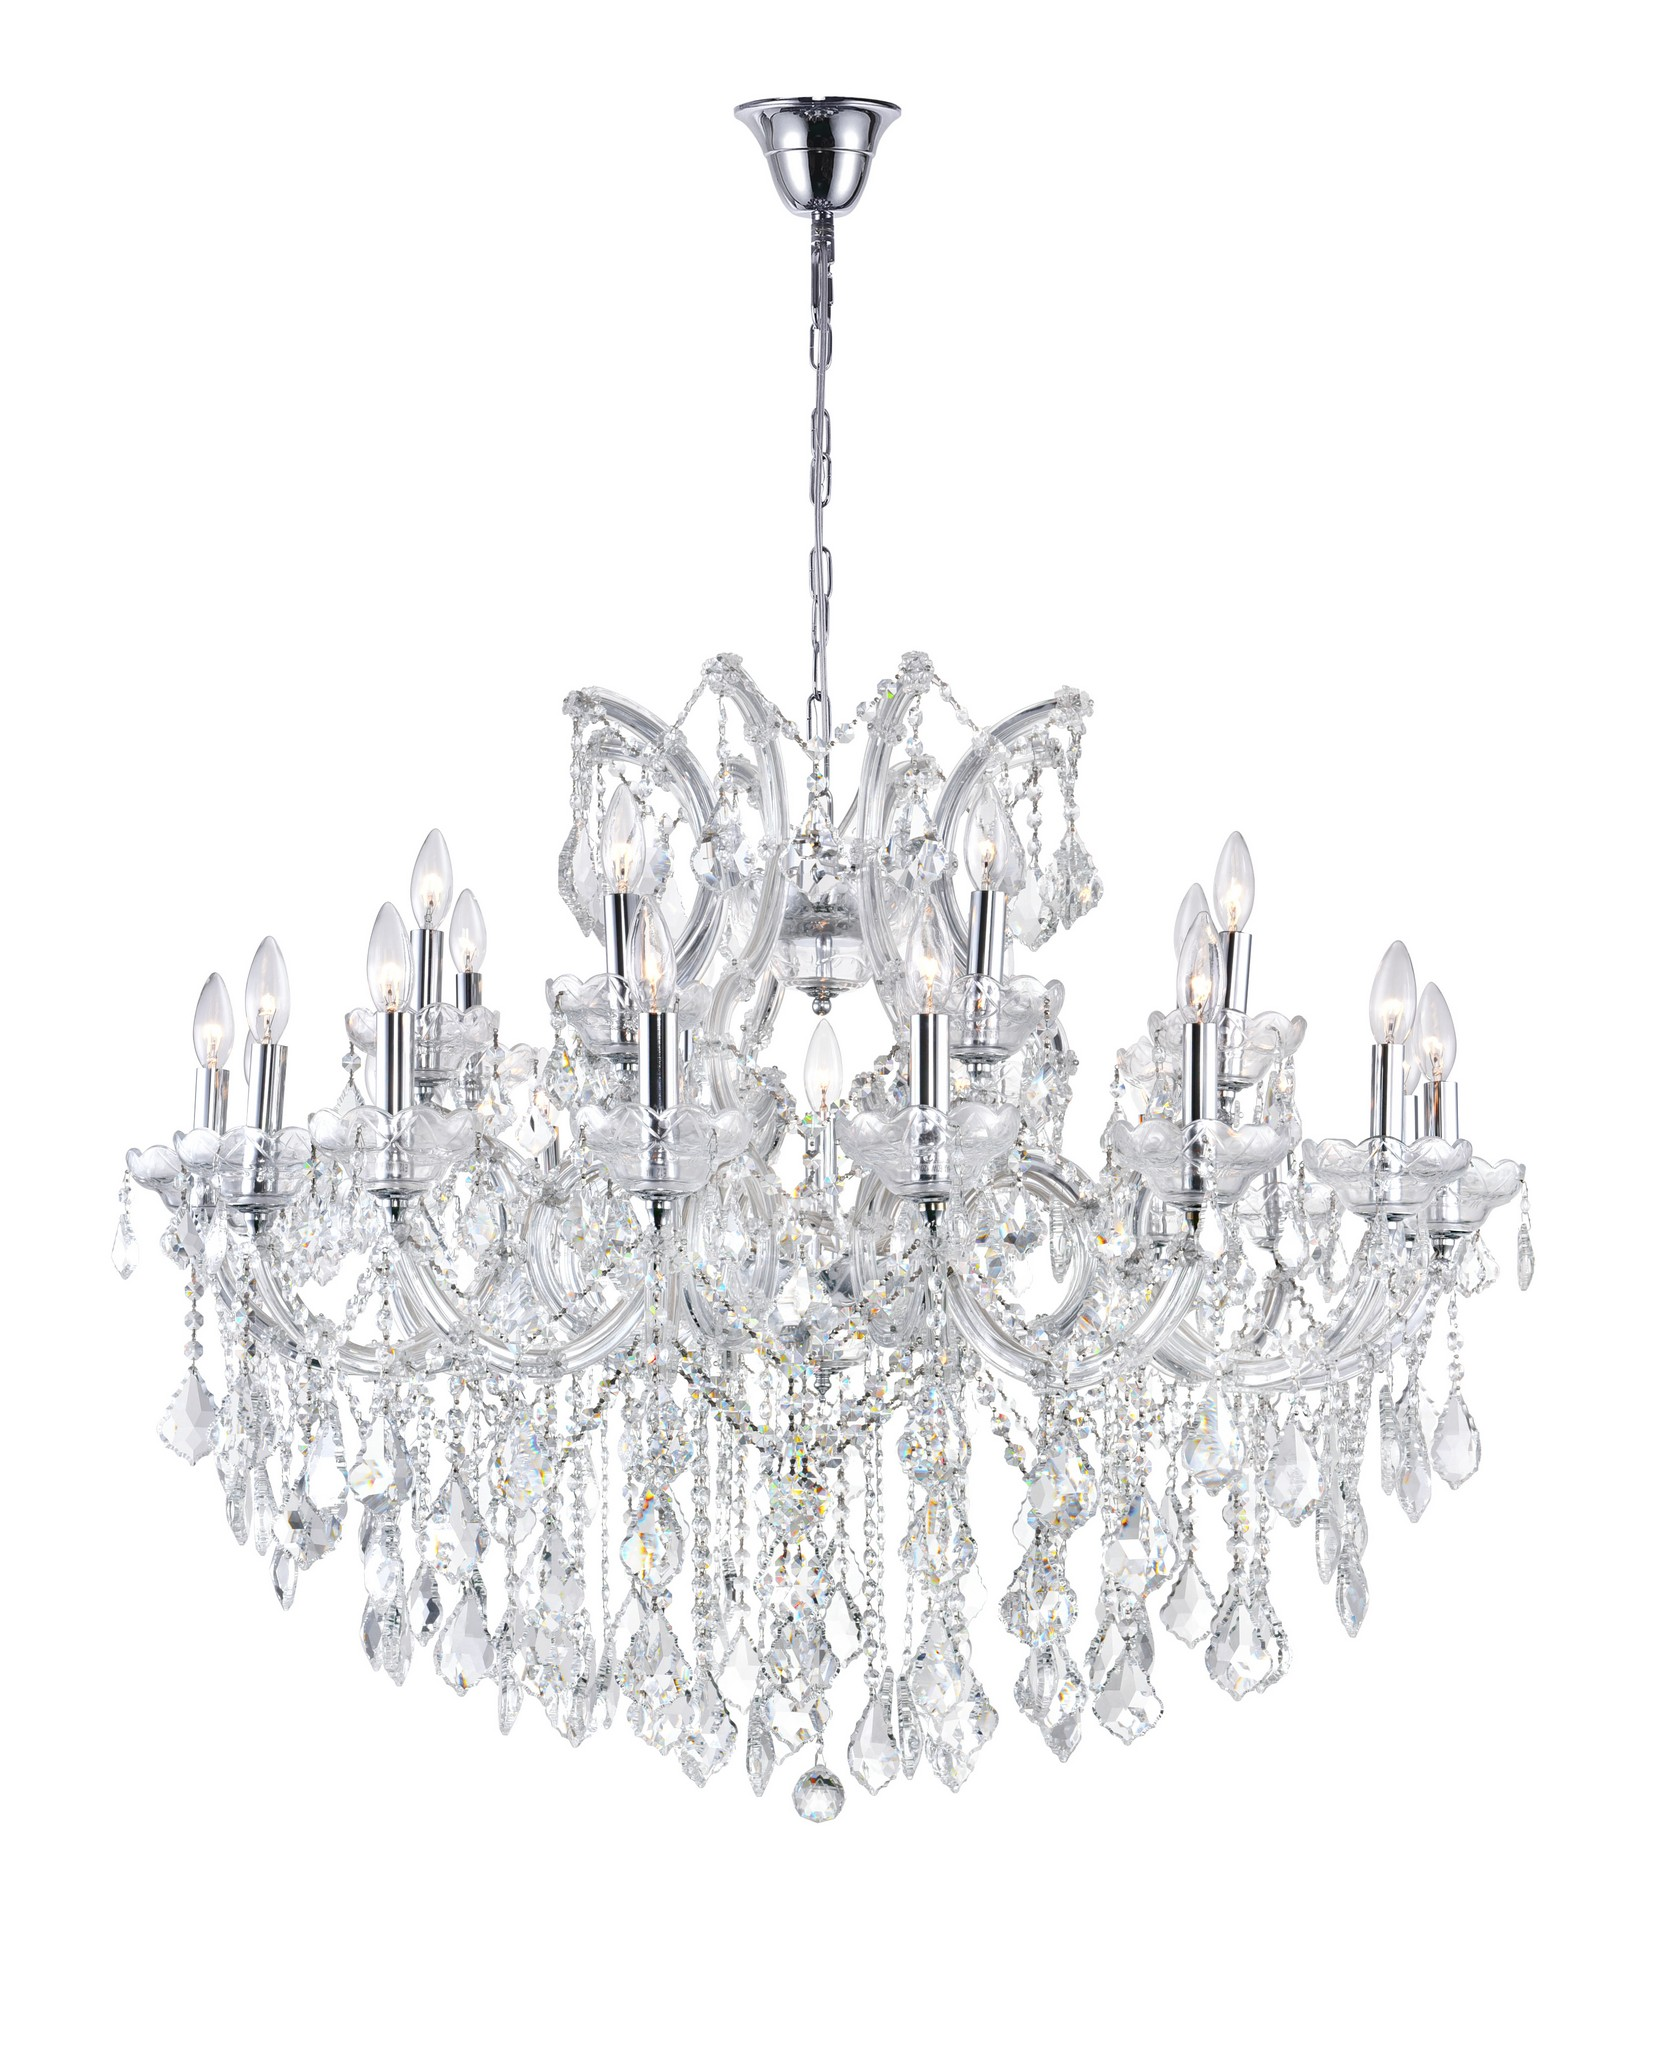 19 Light Up Chandelier with Chrome finish